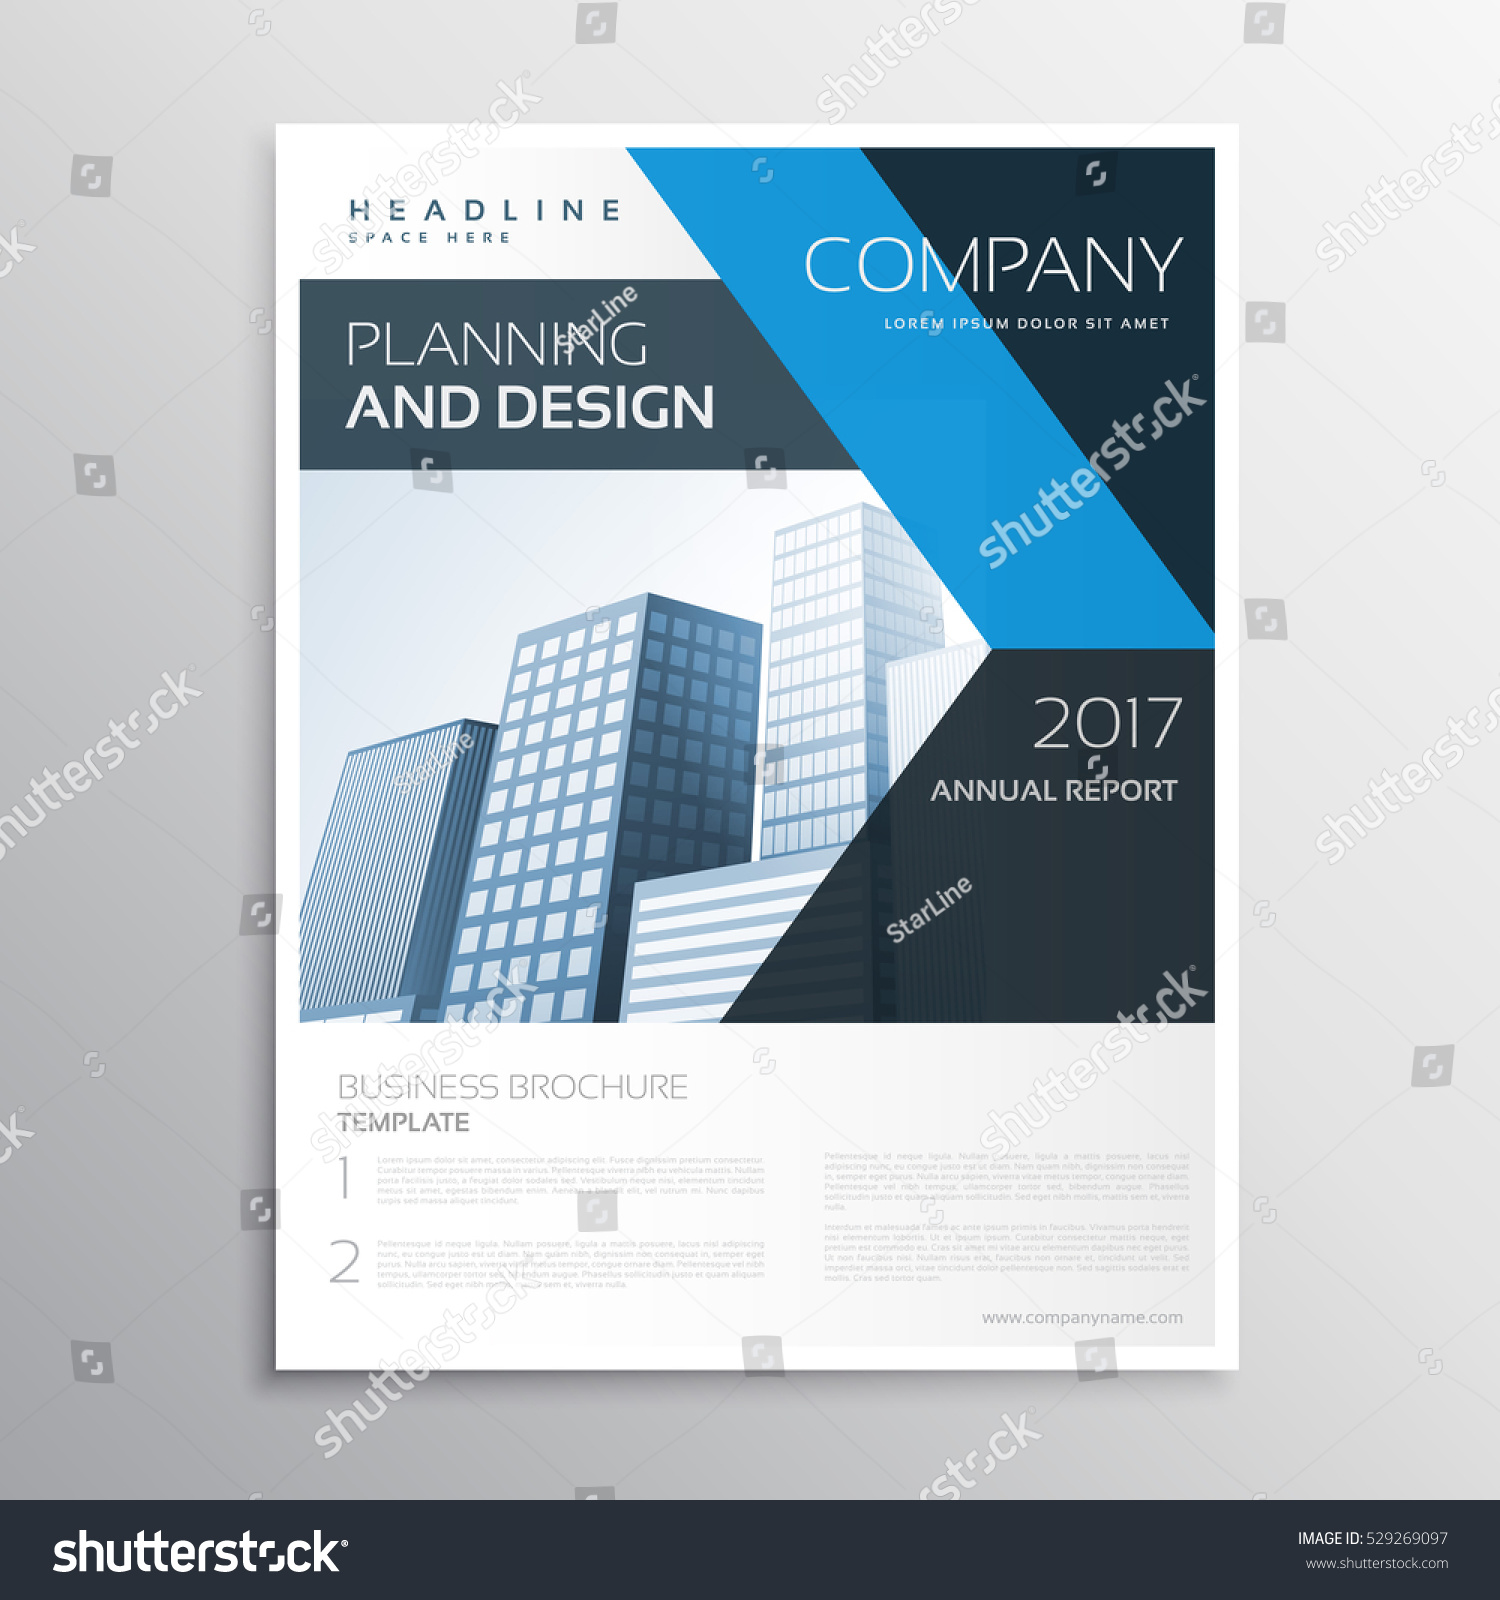 Corporate Brand Business Leaflet Brochure Template Stock Vector ...